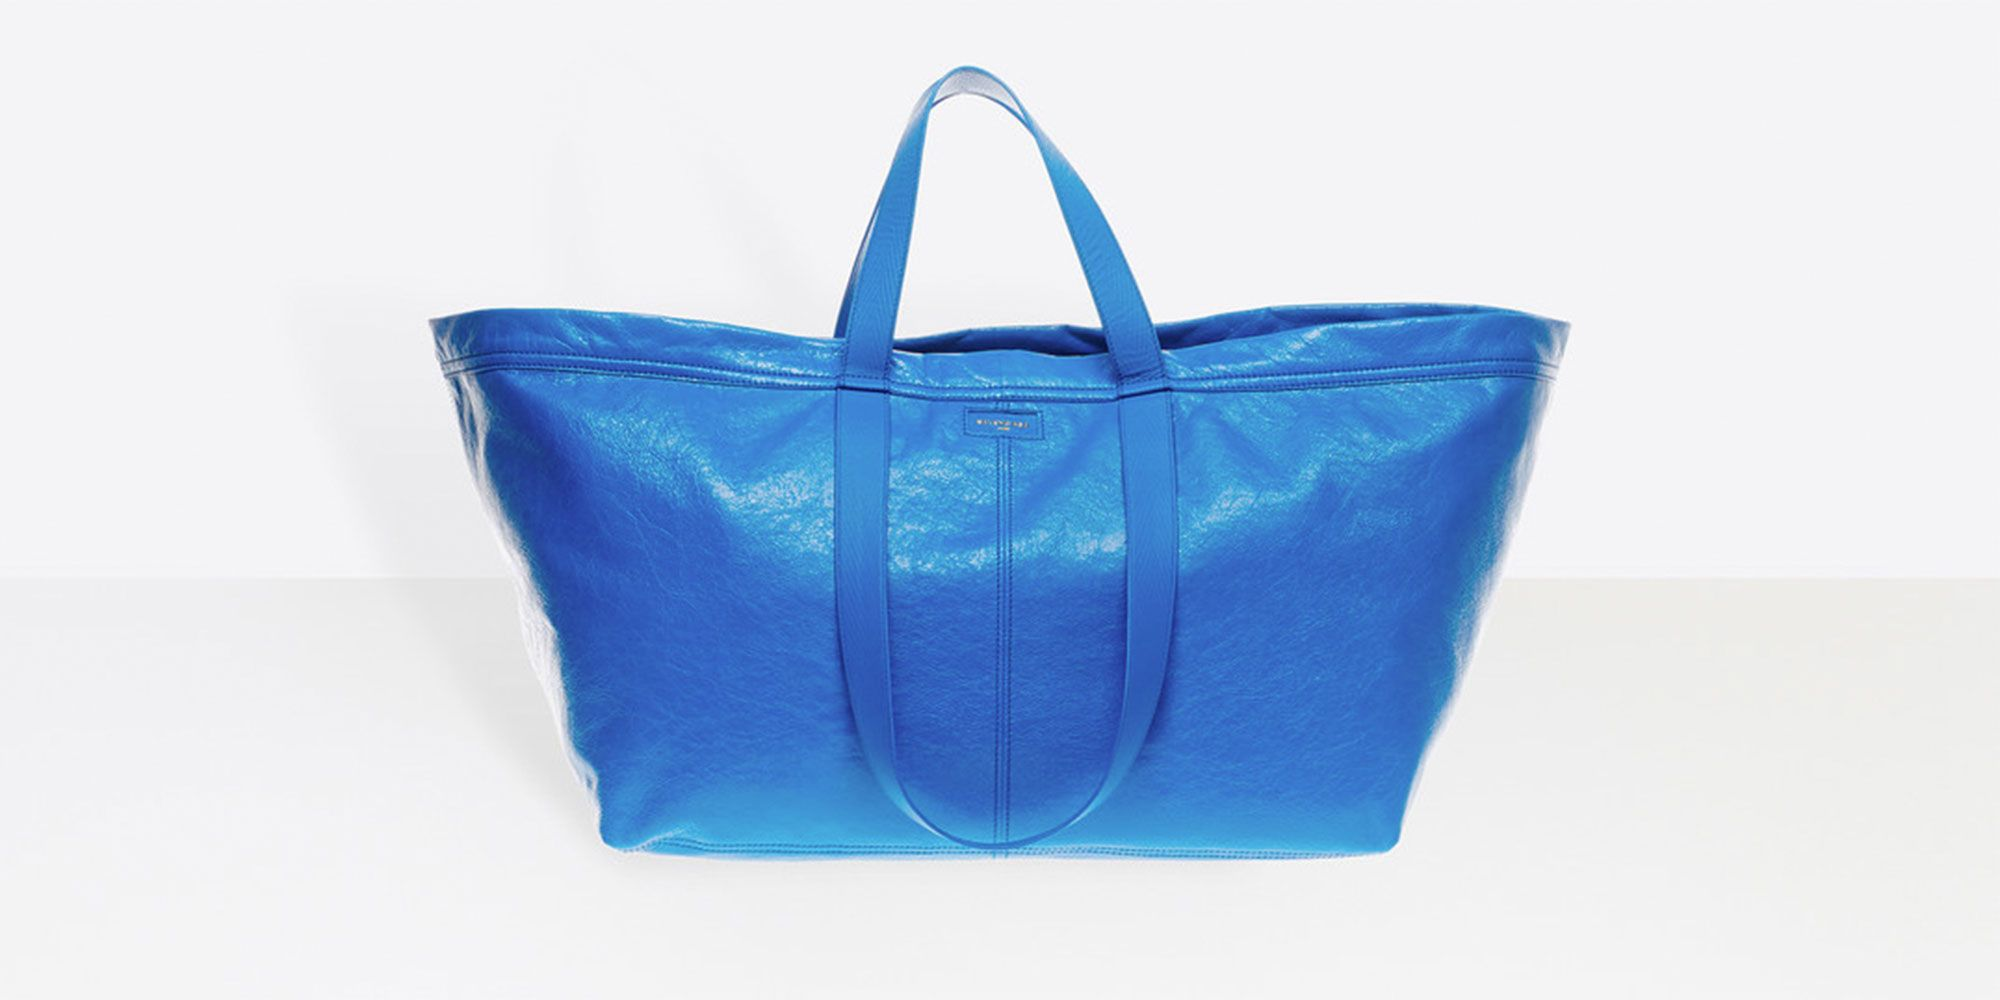 This £1,672 designer tote looks just like Ikea's 40p carrier bag